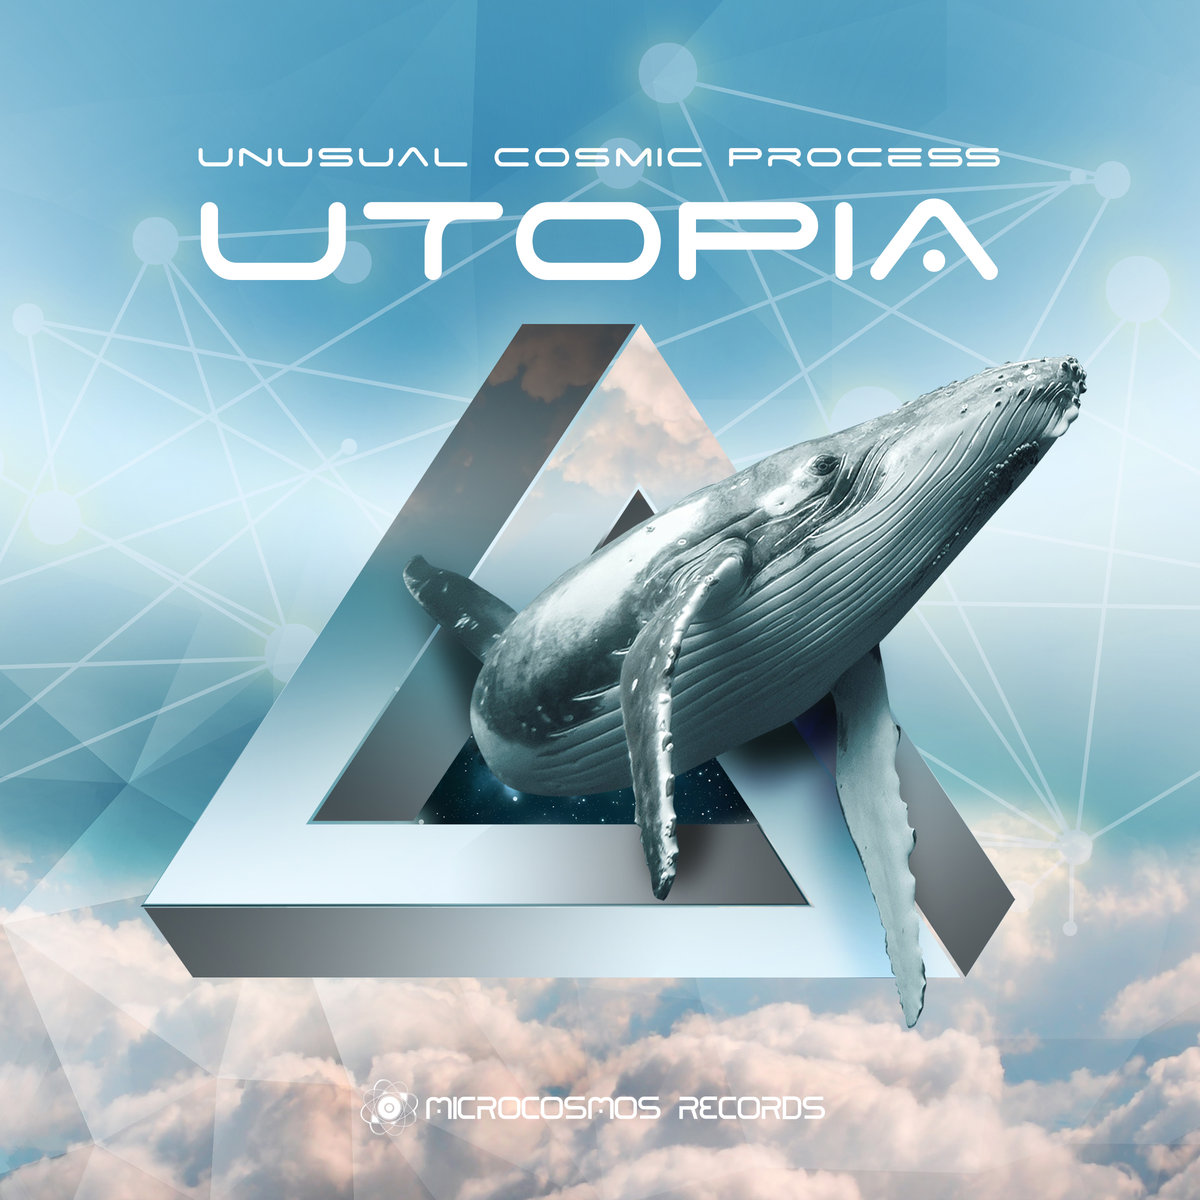 Unusual Cosmic Process - Countdown @ 'Utopia' album (ambient, chill-out)